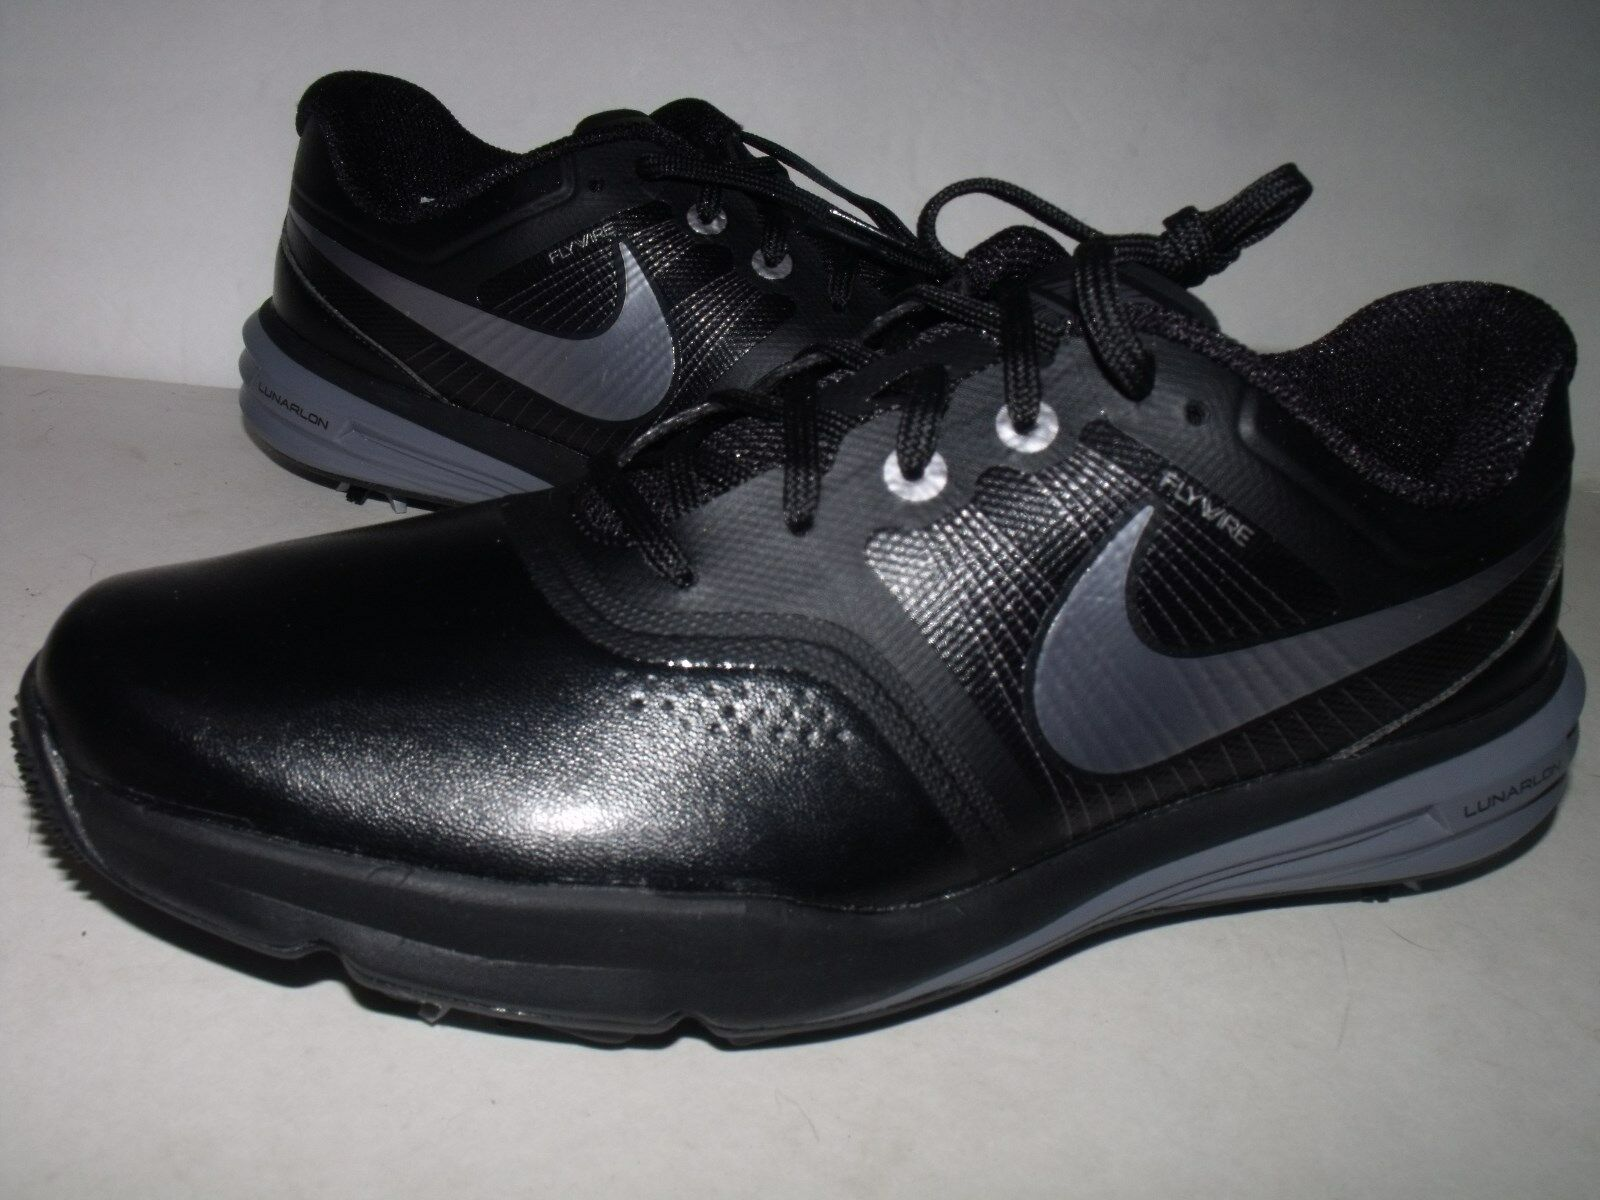 Nike Lunar Command Command Command Mens Water Resistant Spiked GOLF Shoe (Black) NEW Men Sz 7.5 b17b48